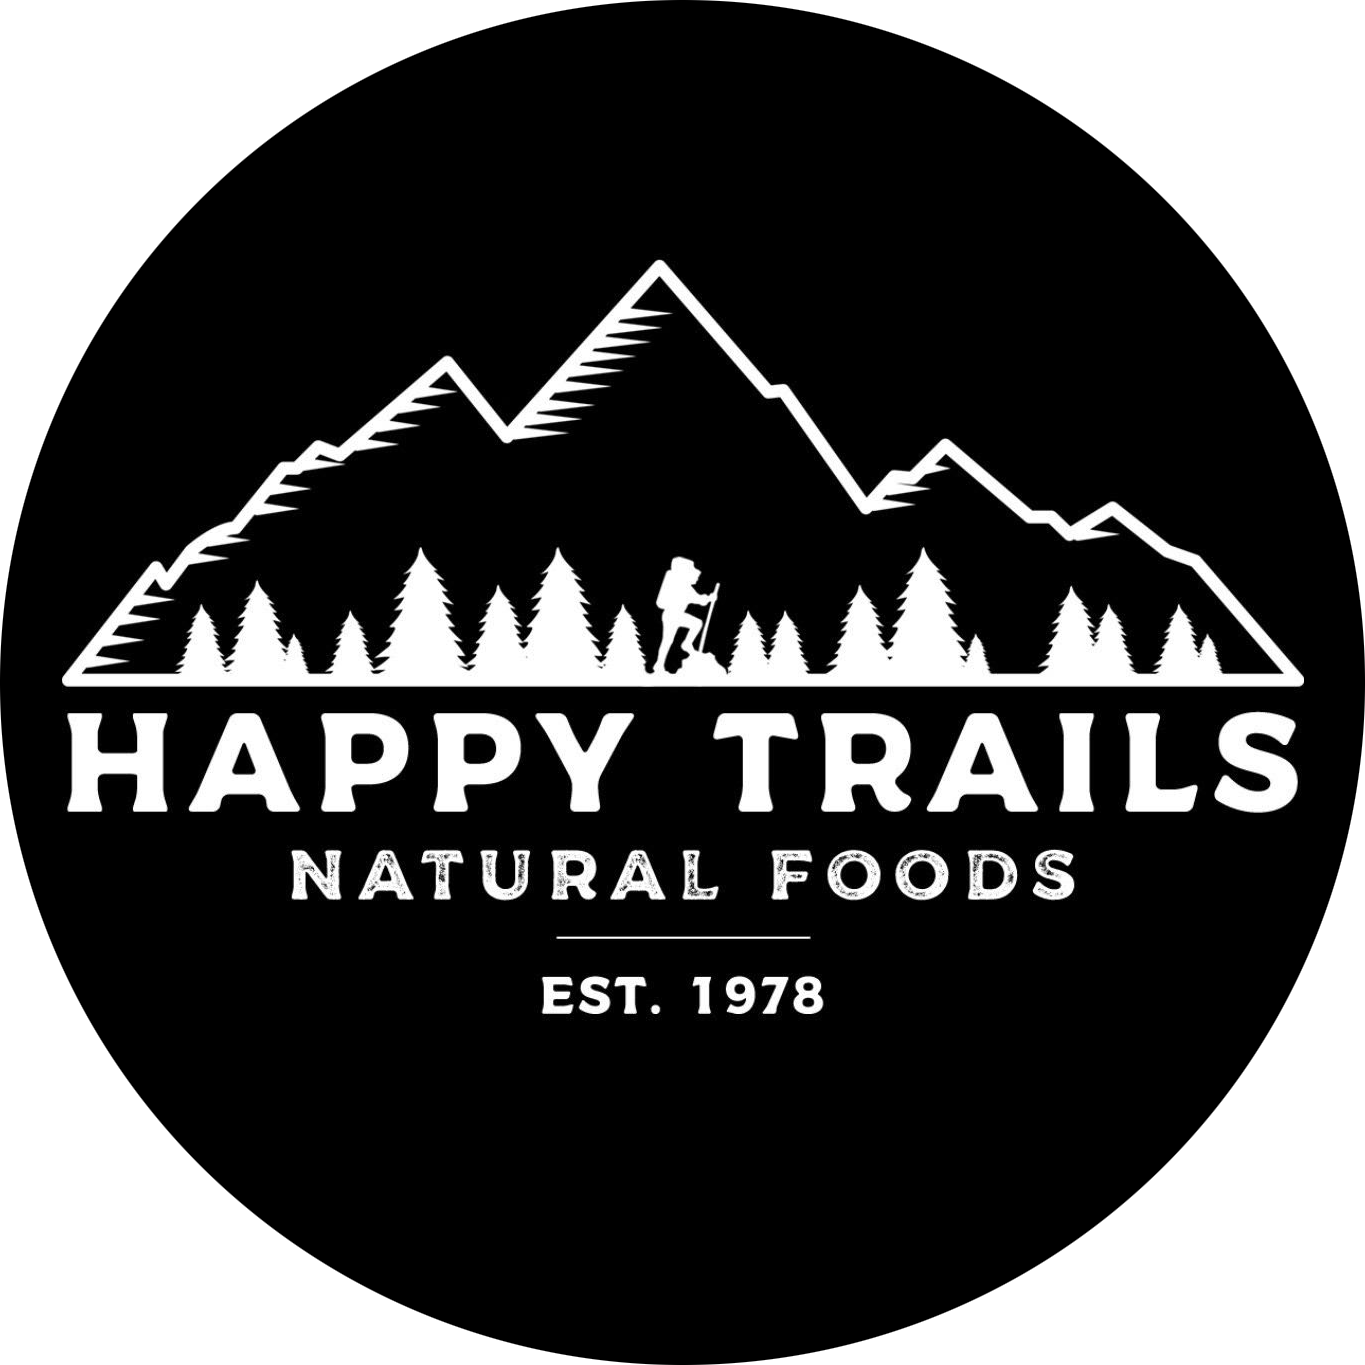 Happy Trails Natural Foods